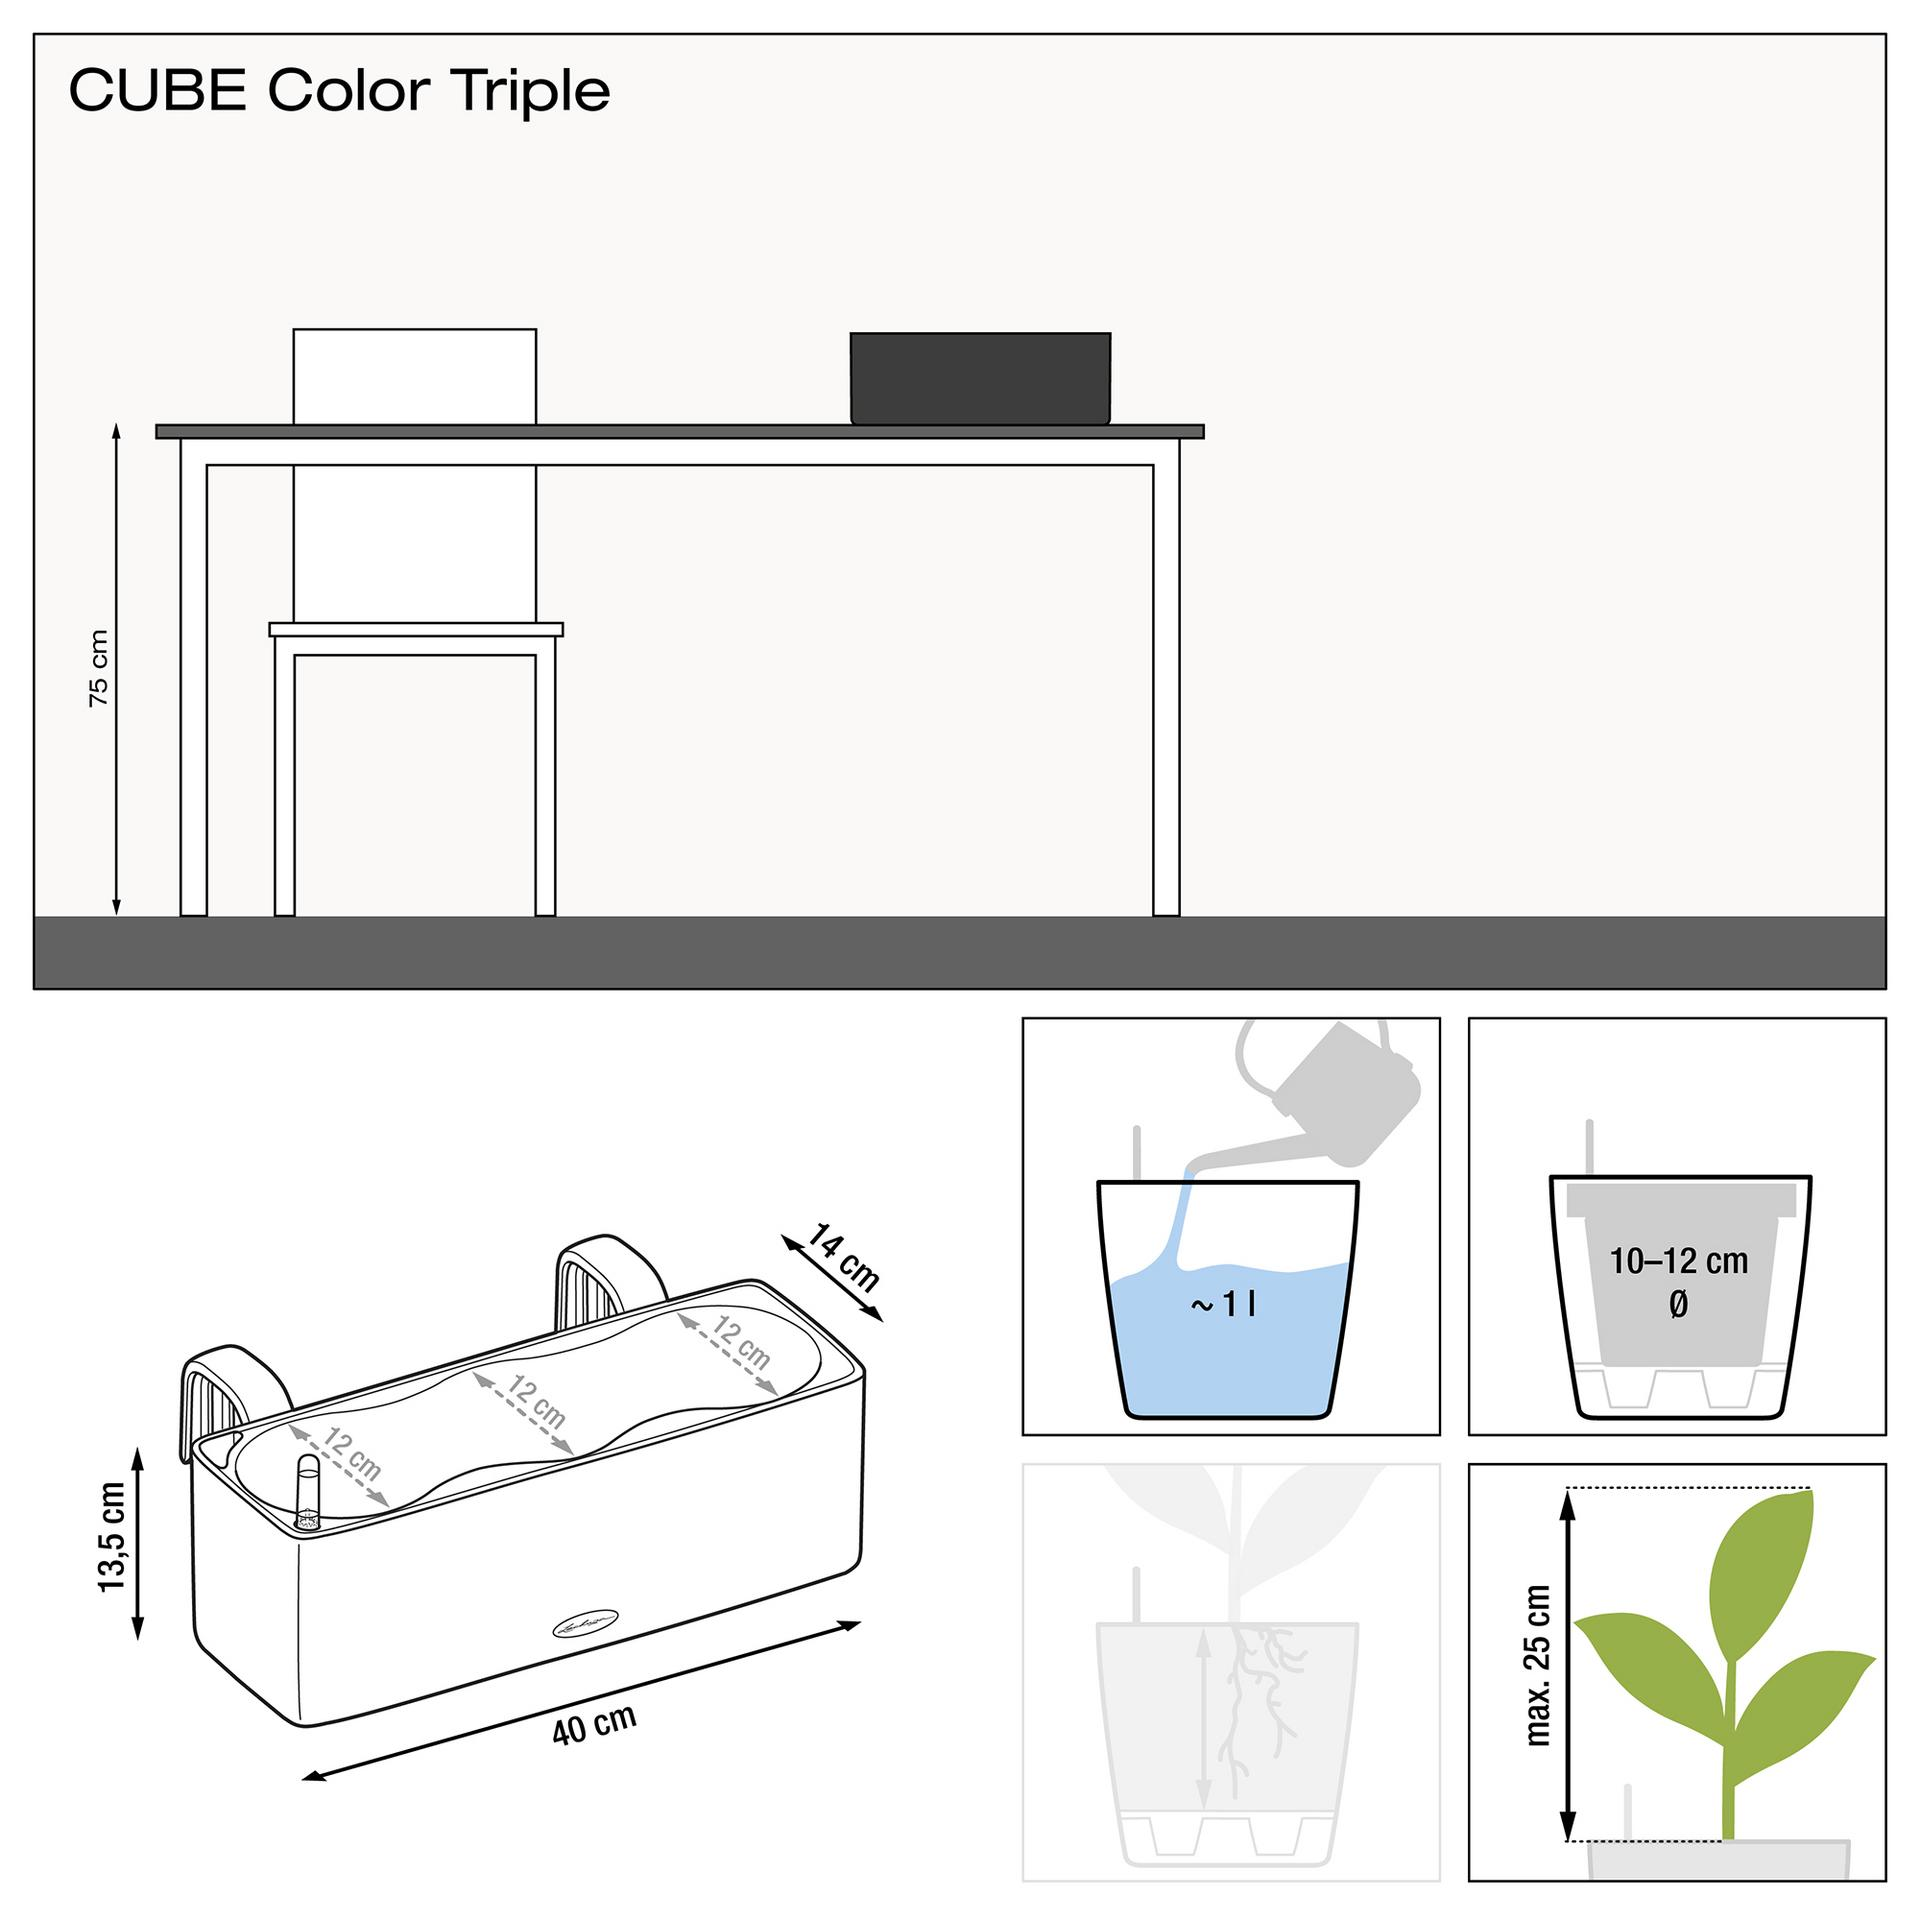 le_cube-color-triple_product_addi_nz